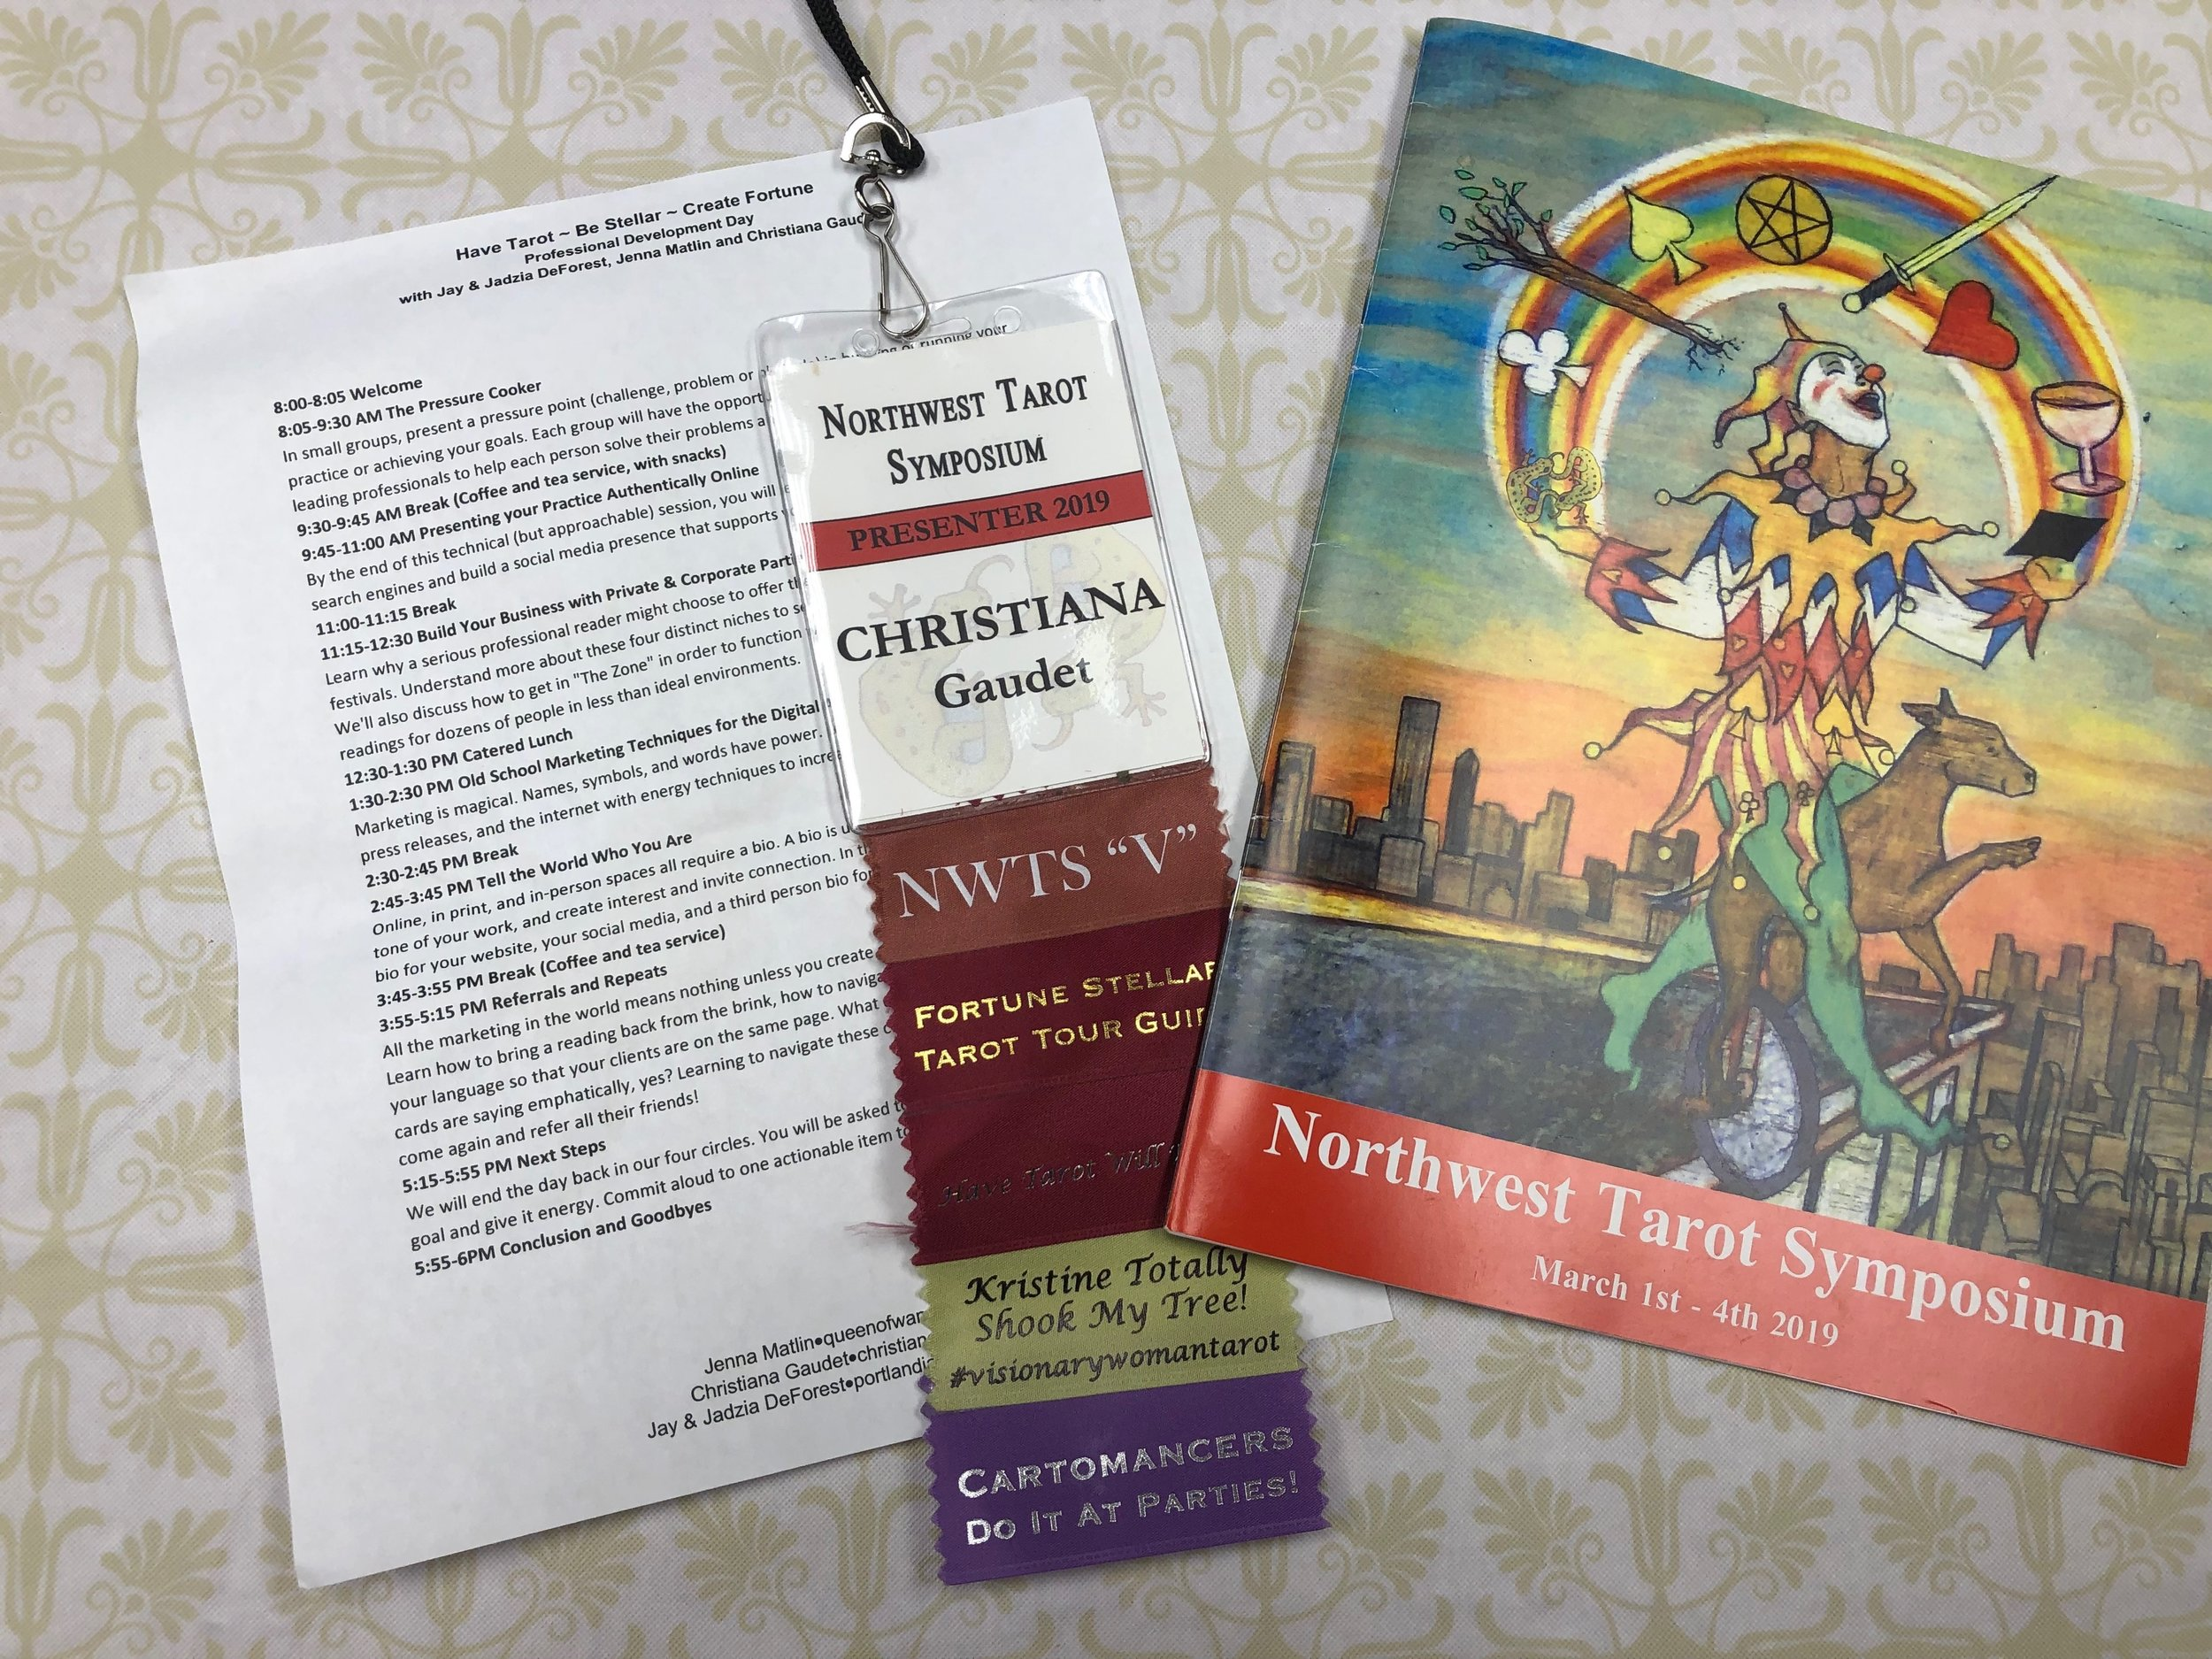 Northwest Tarot Symposium 2019 - My Adventure to Portland